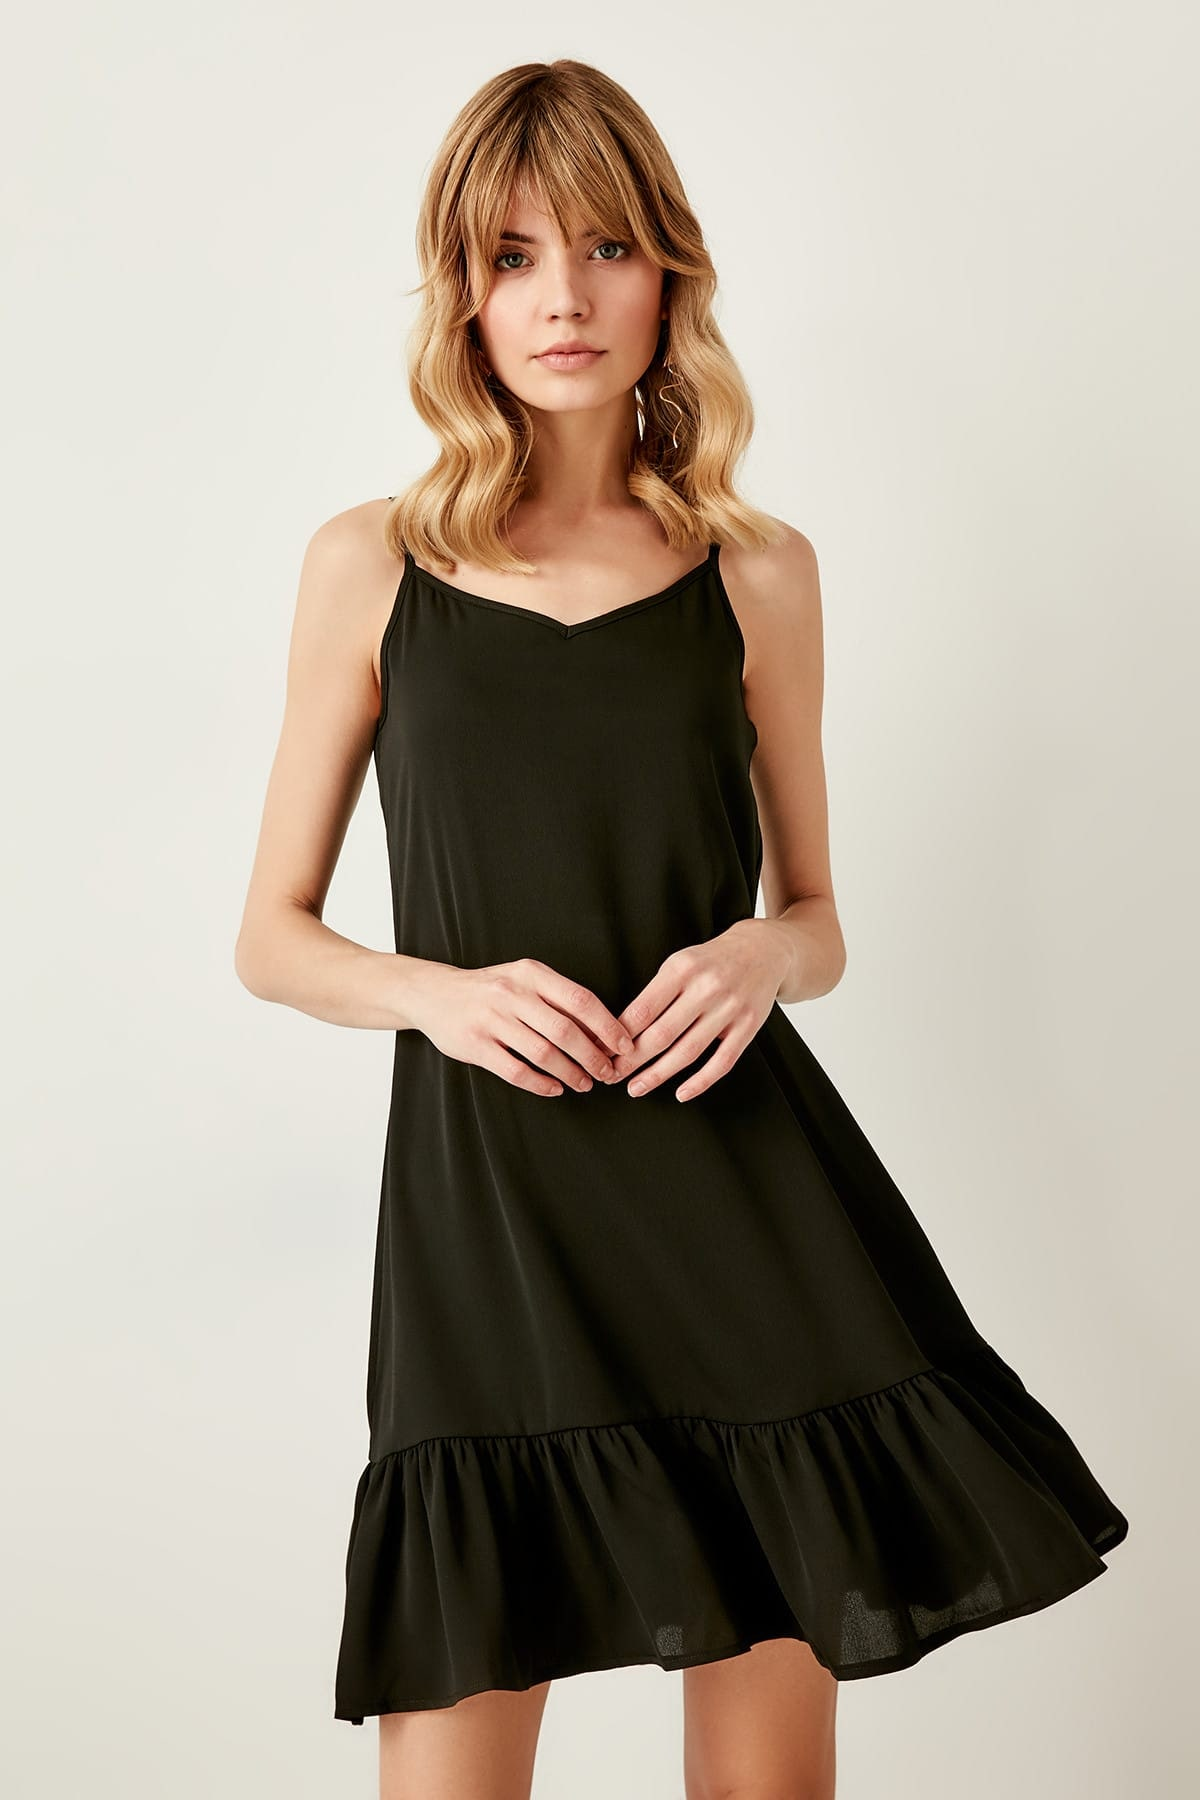 Trendyol Black Hand-Wheel Dress